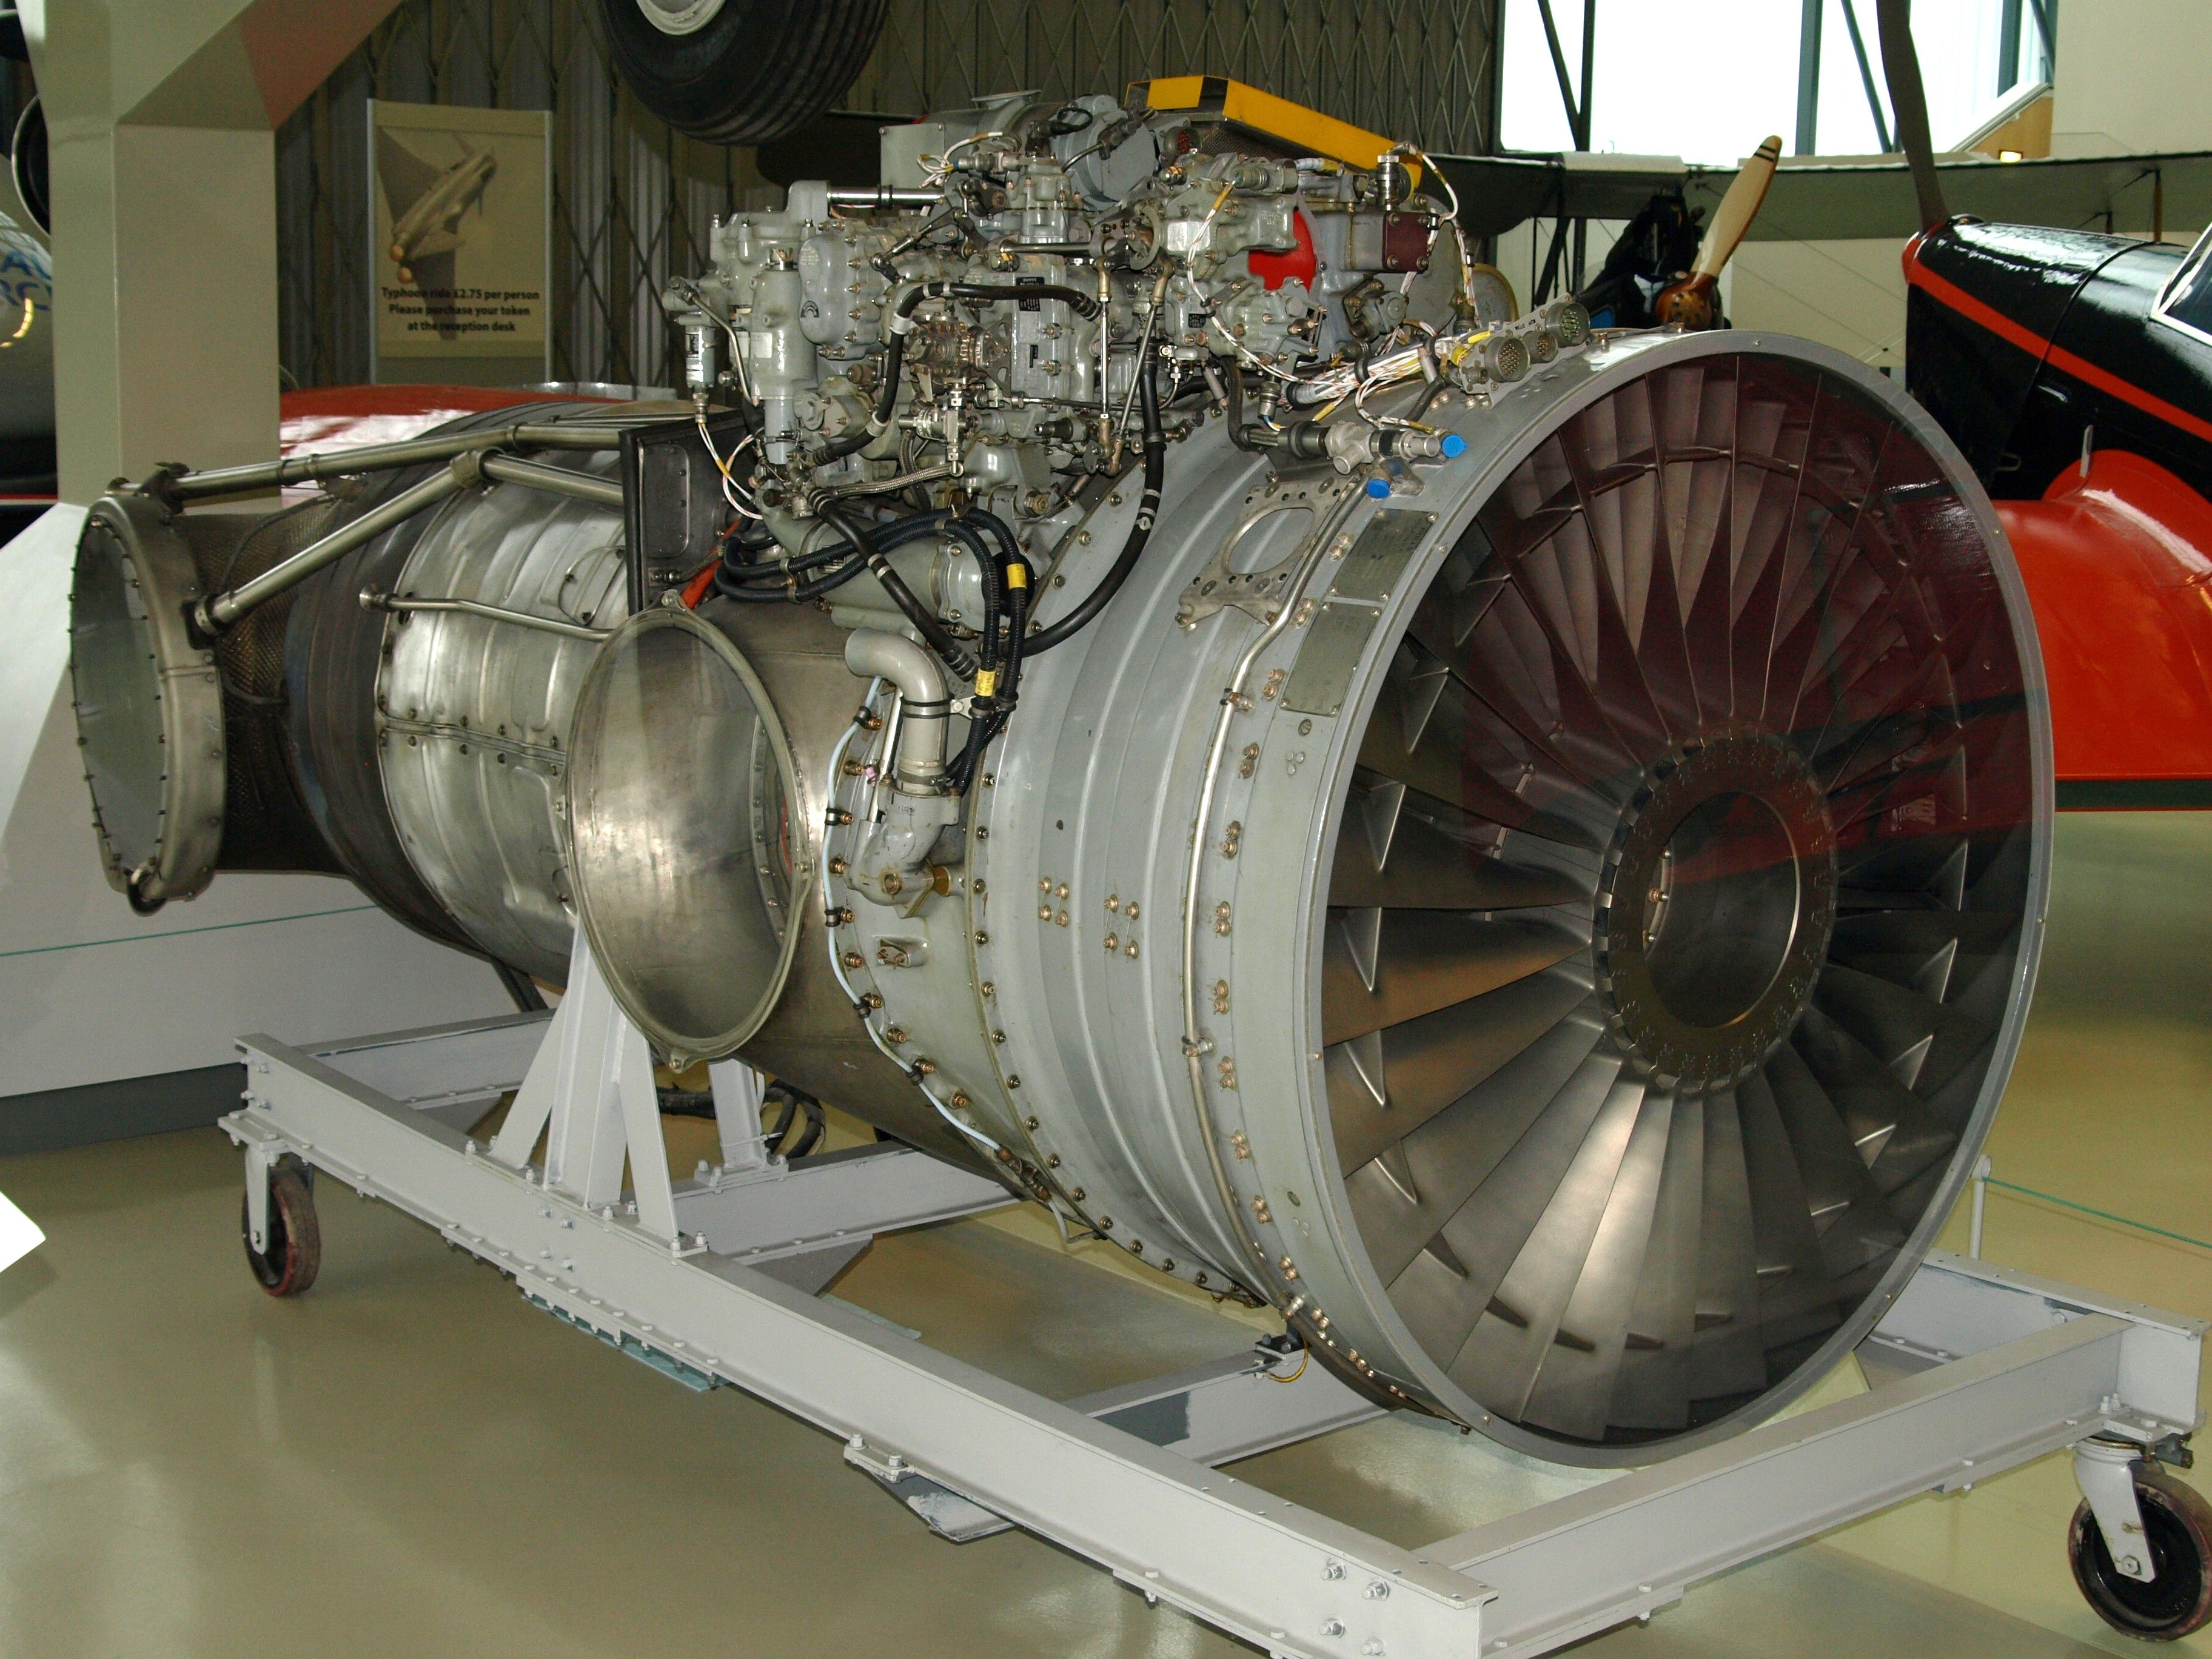 medium resolution of rolls royce pegasus turbine engine gas turbine engineering technology aircraft engine schematic